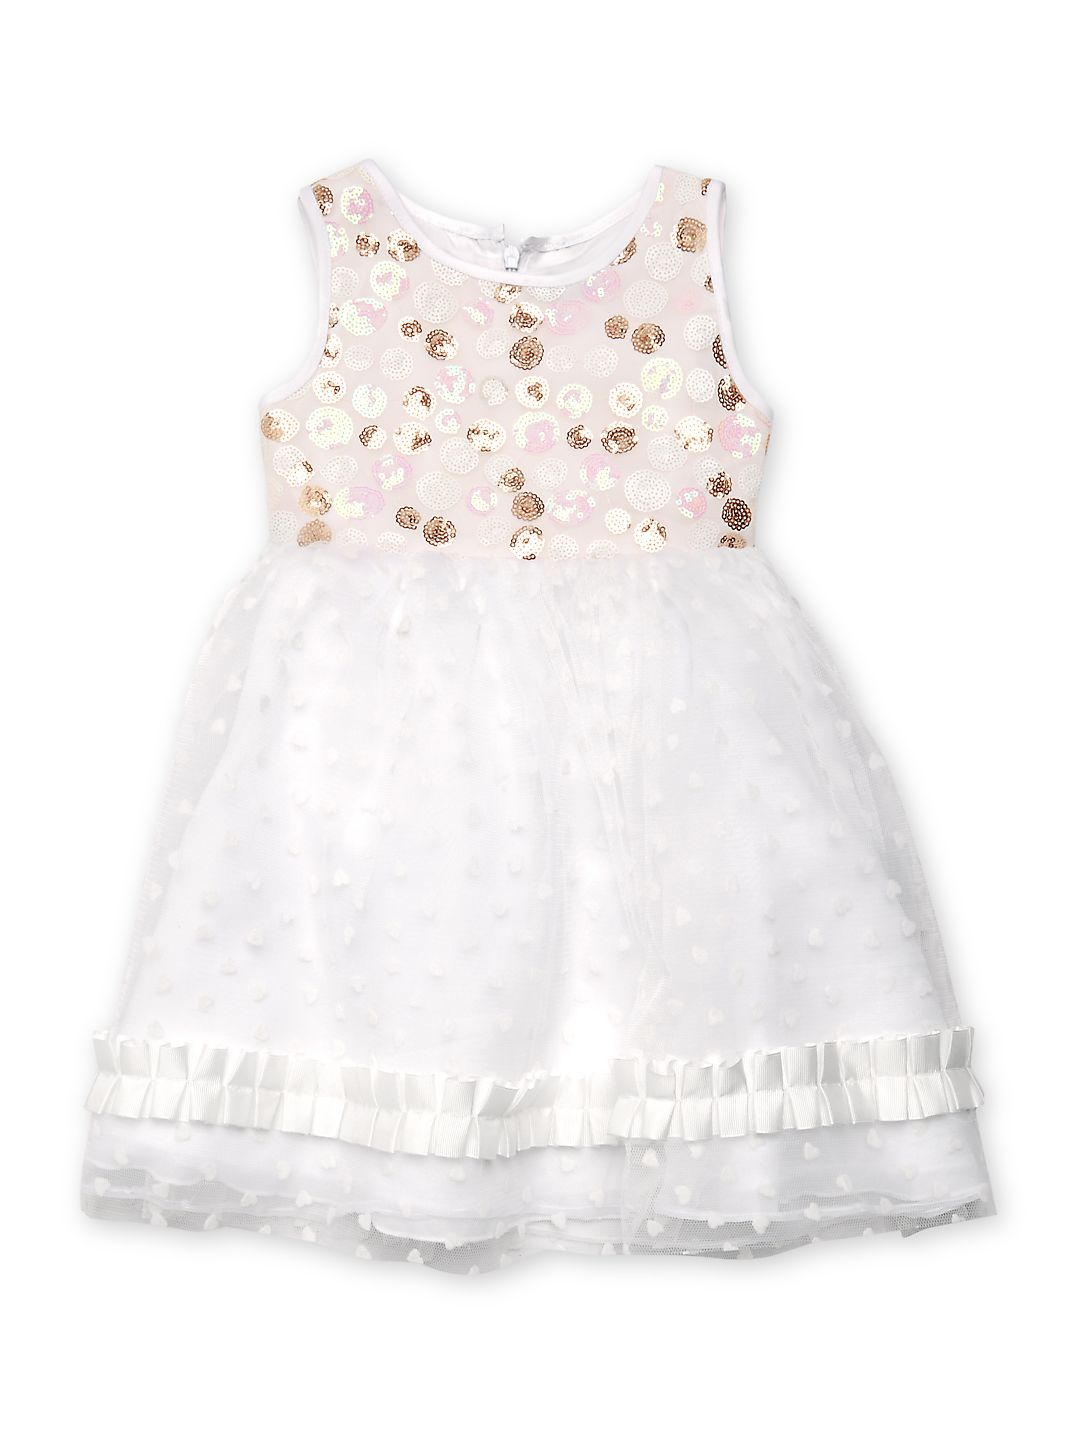 Little Girl's Jenny Organza Sequined Dress